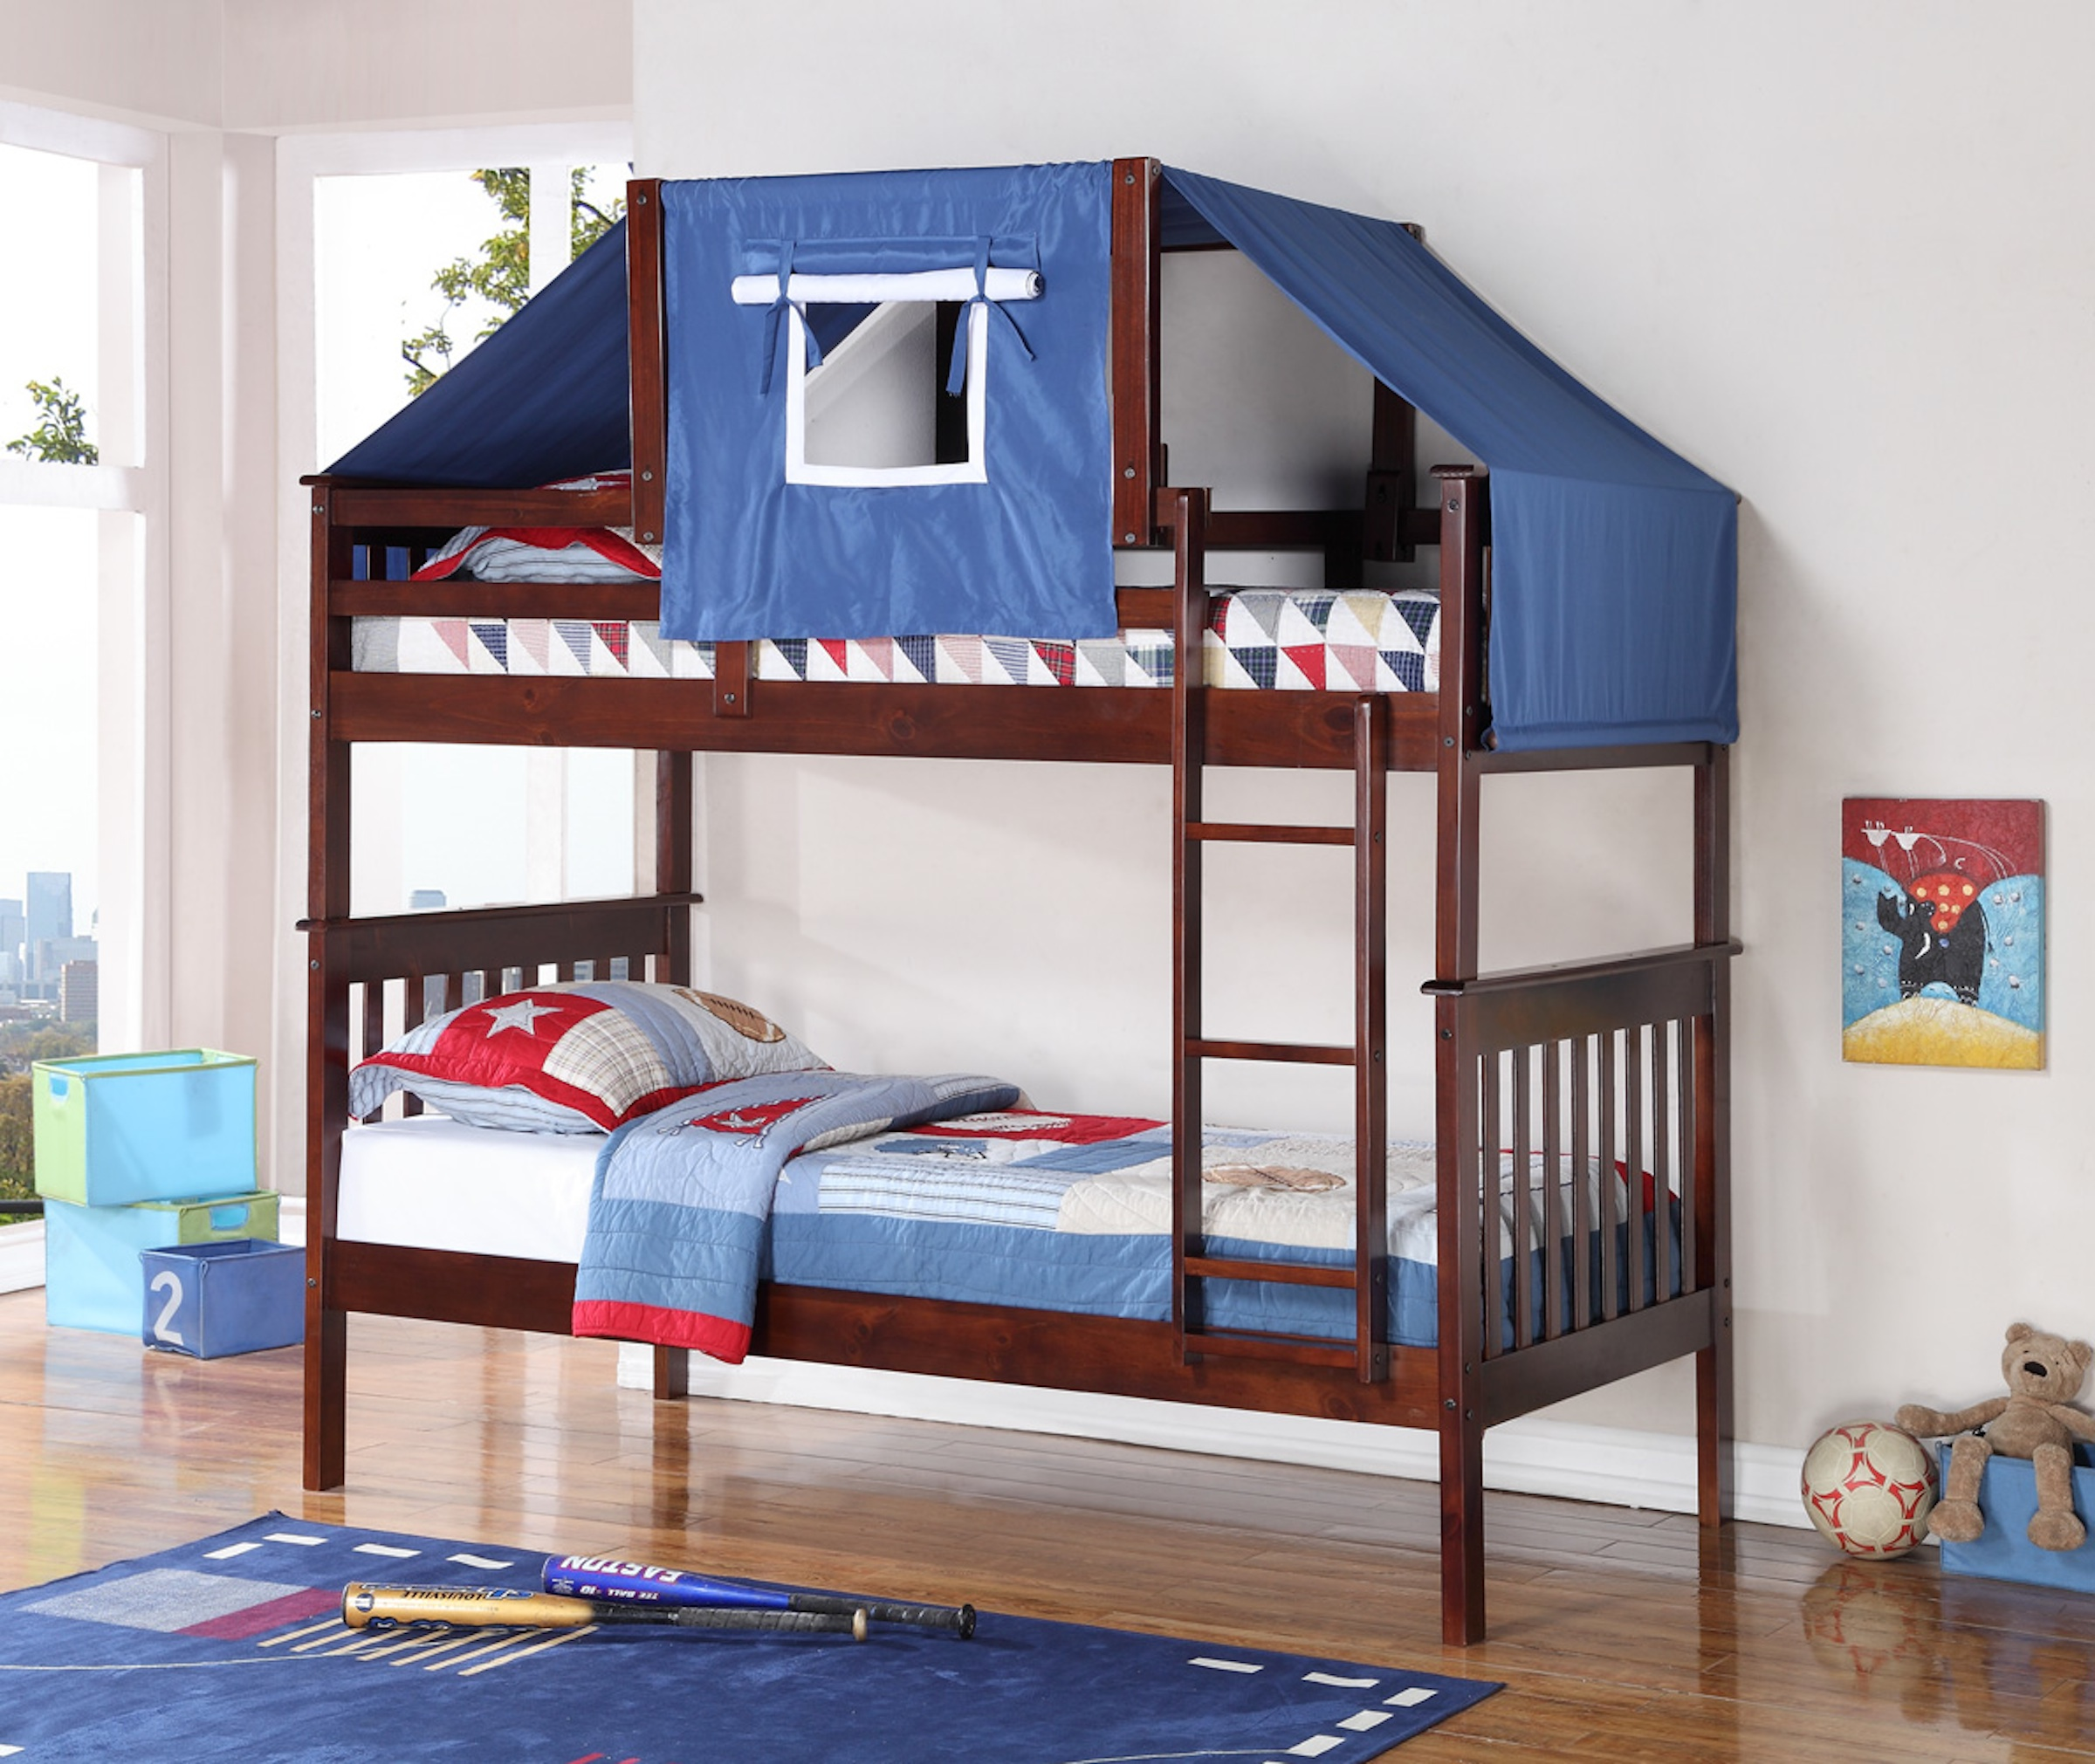 Awsome Bunkbeds | Bunk Beds for Small Rooms | Unique Bunk Bed Plans